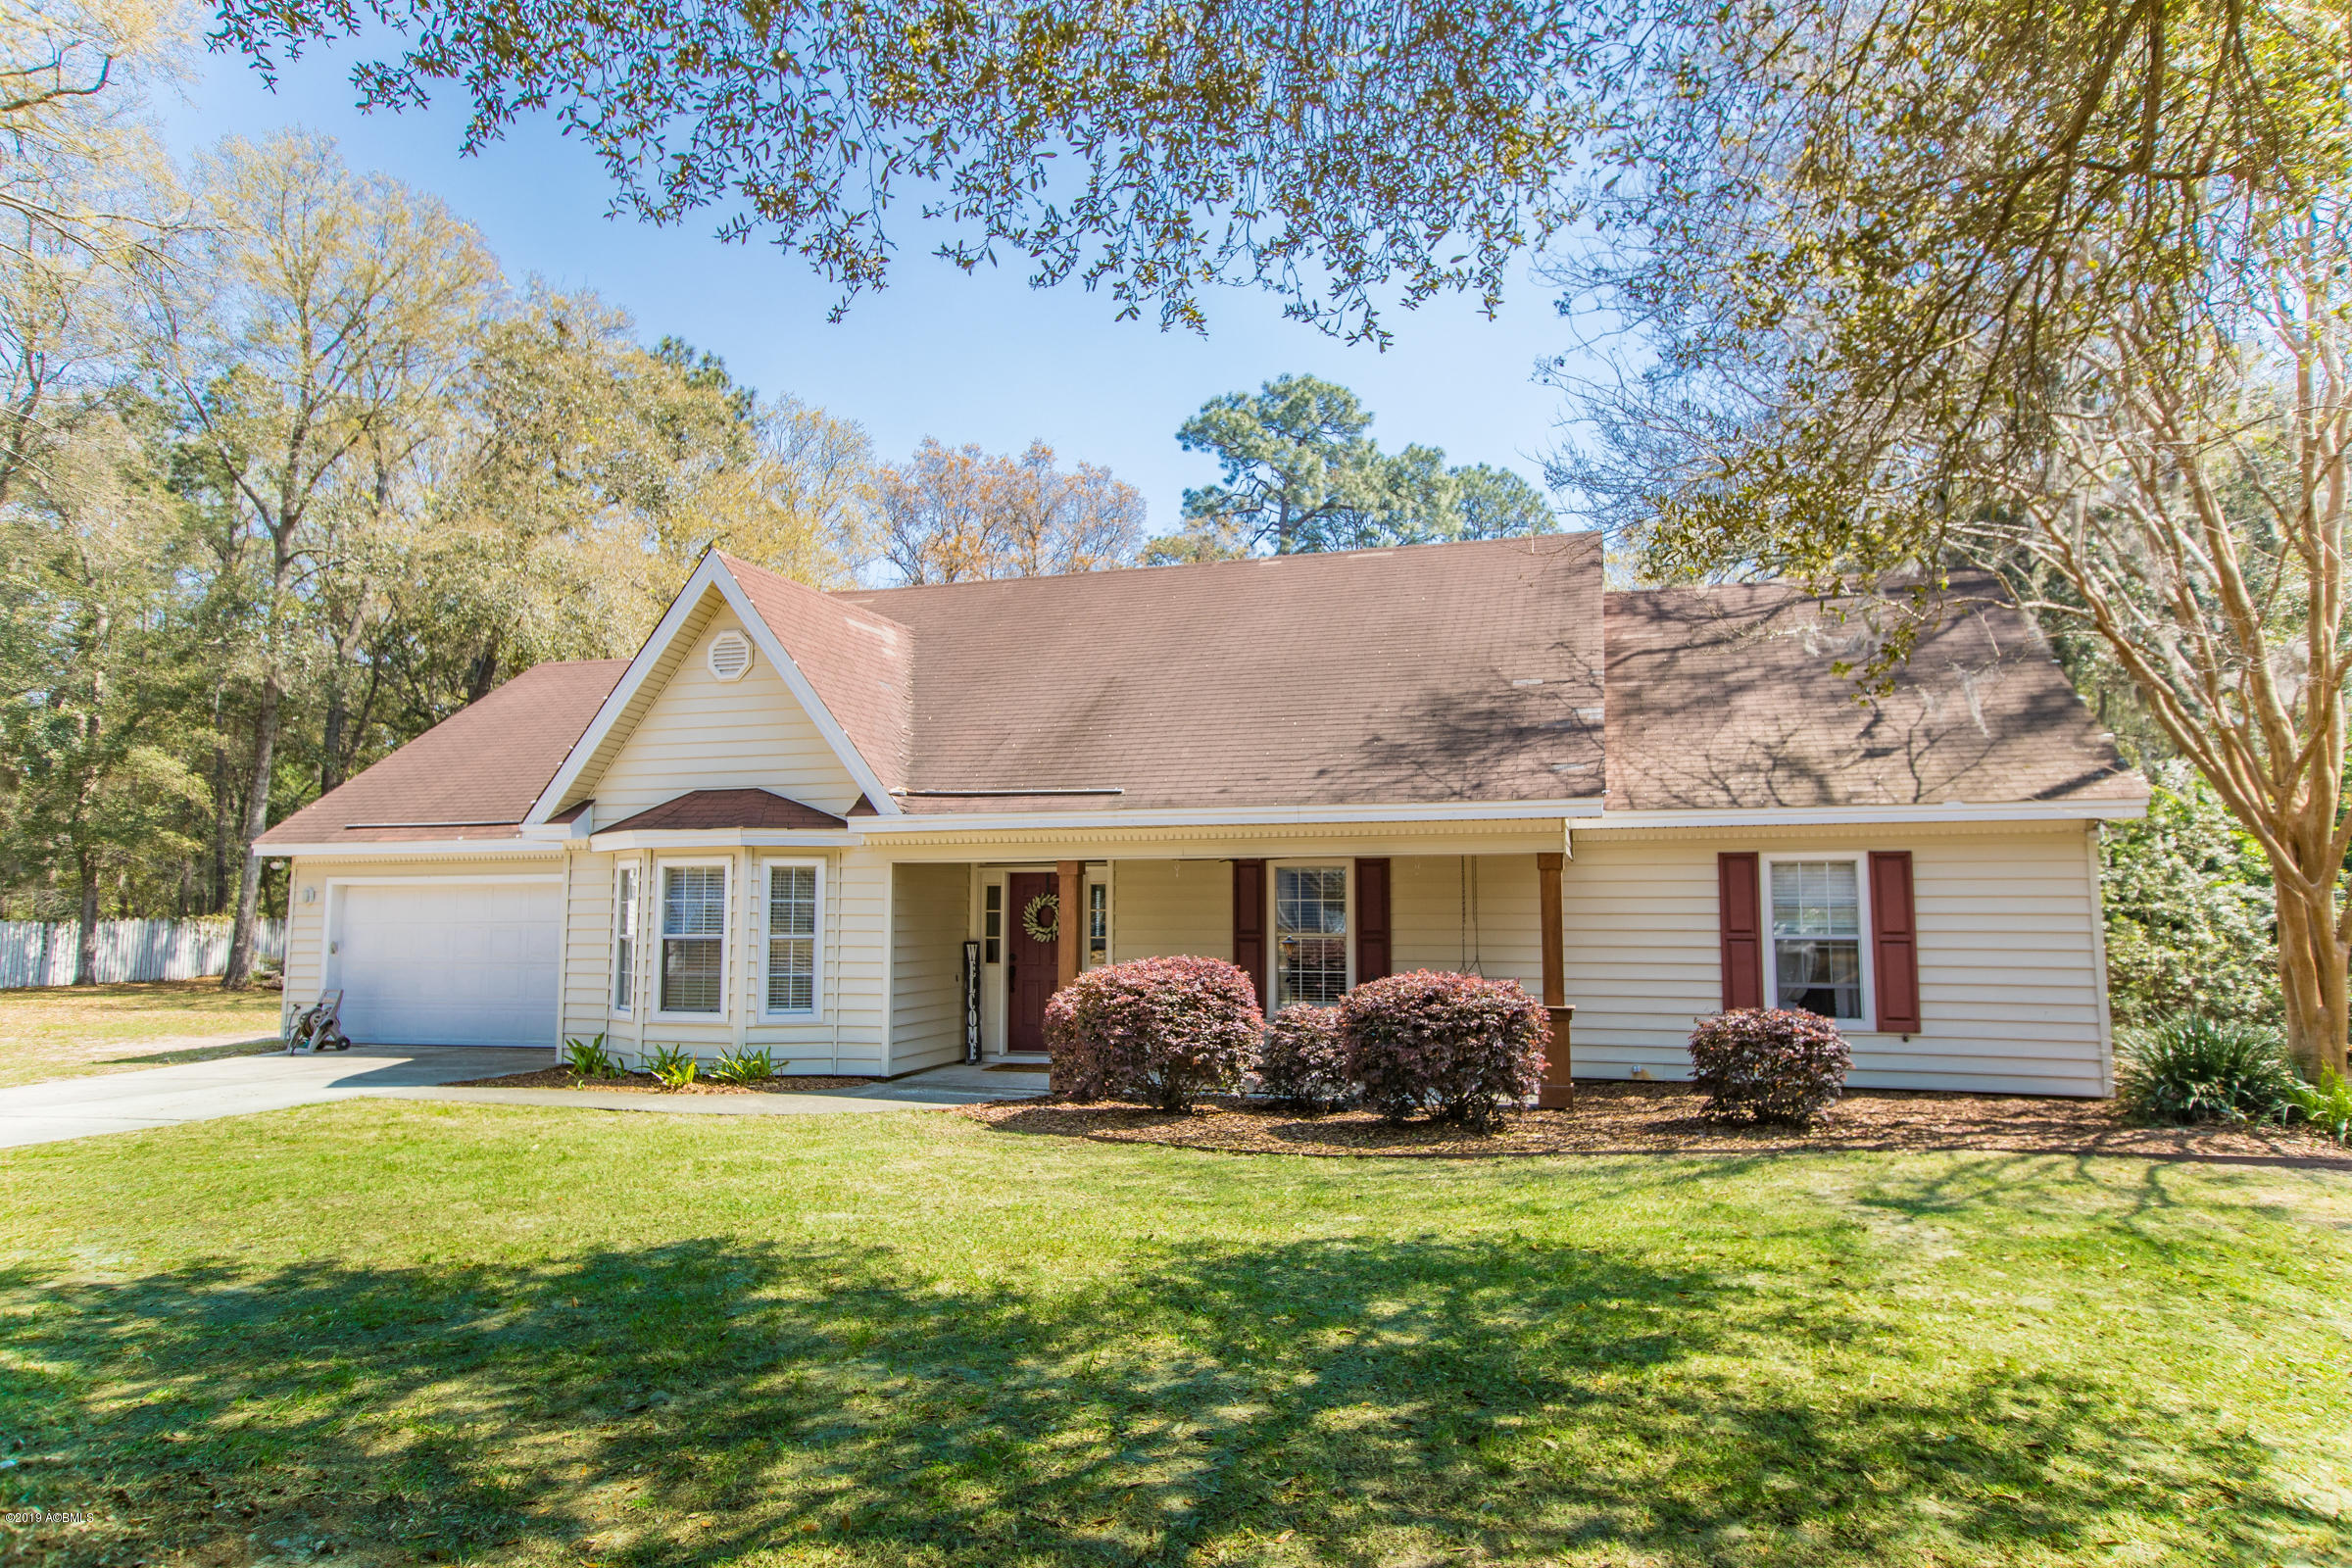 Photo of 17 Christine Drive, Beaufort, SC 29907